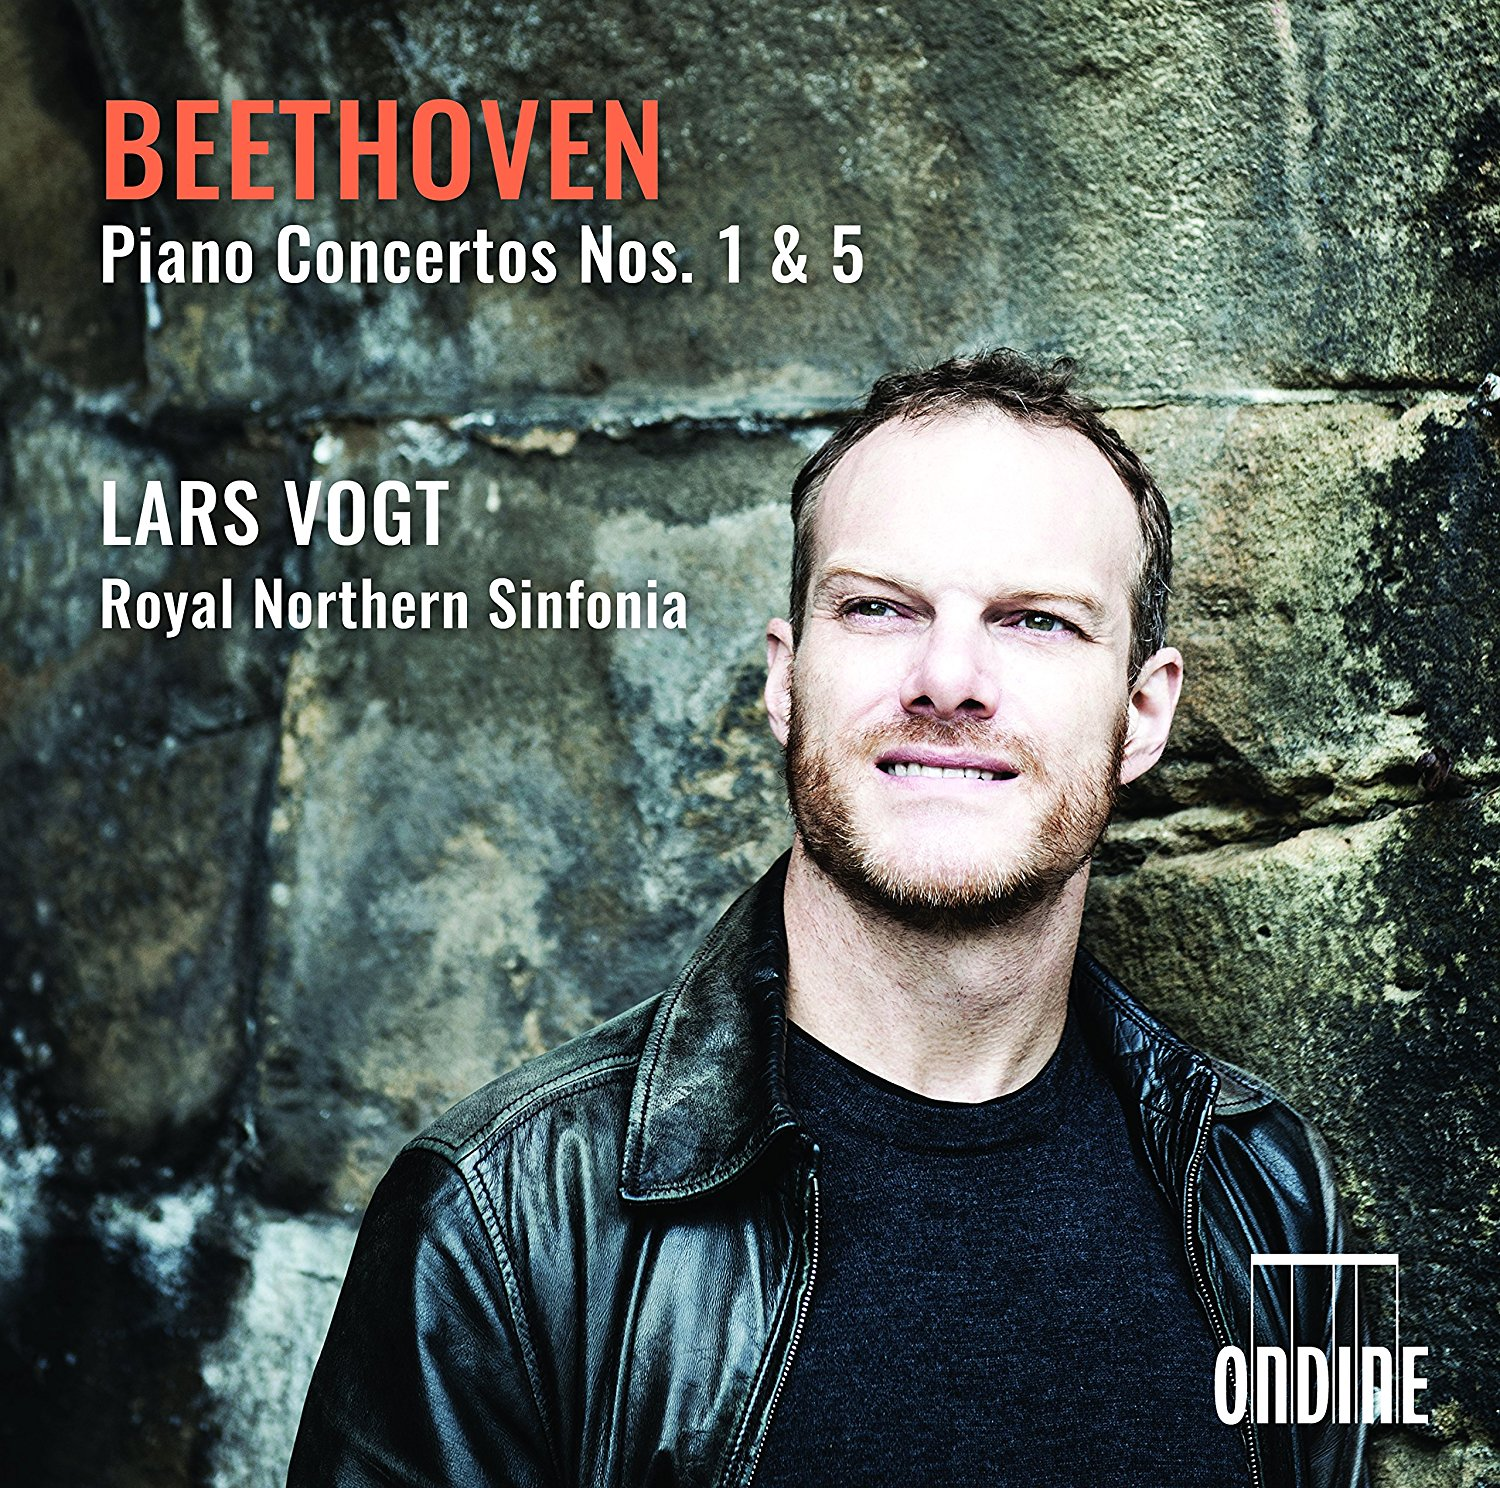 Beethoven: Royal Northern Sinfonia, Lars Vogt